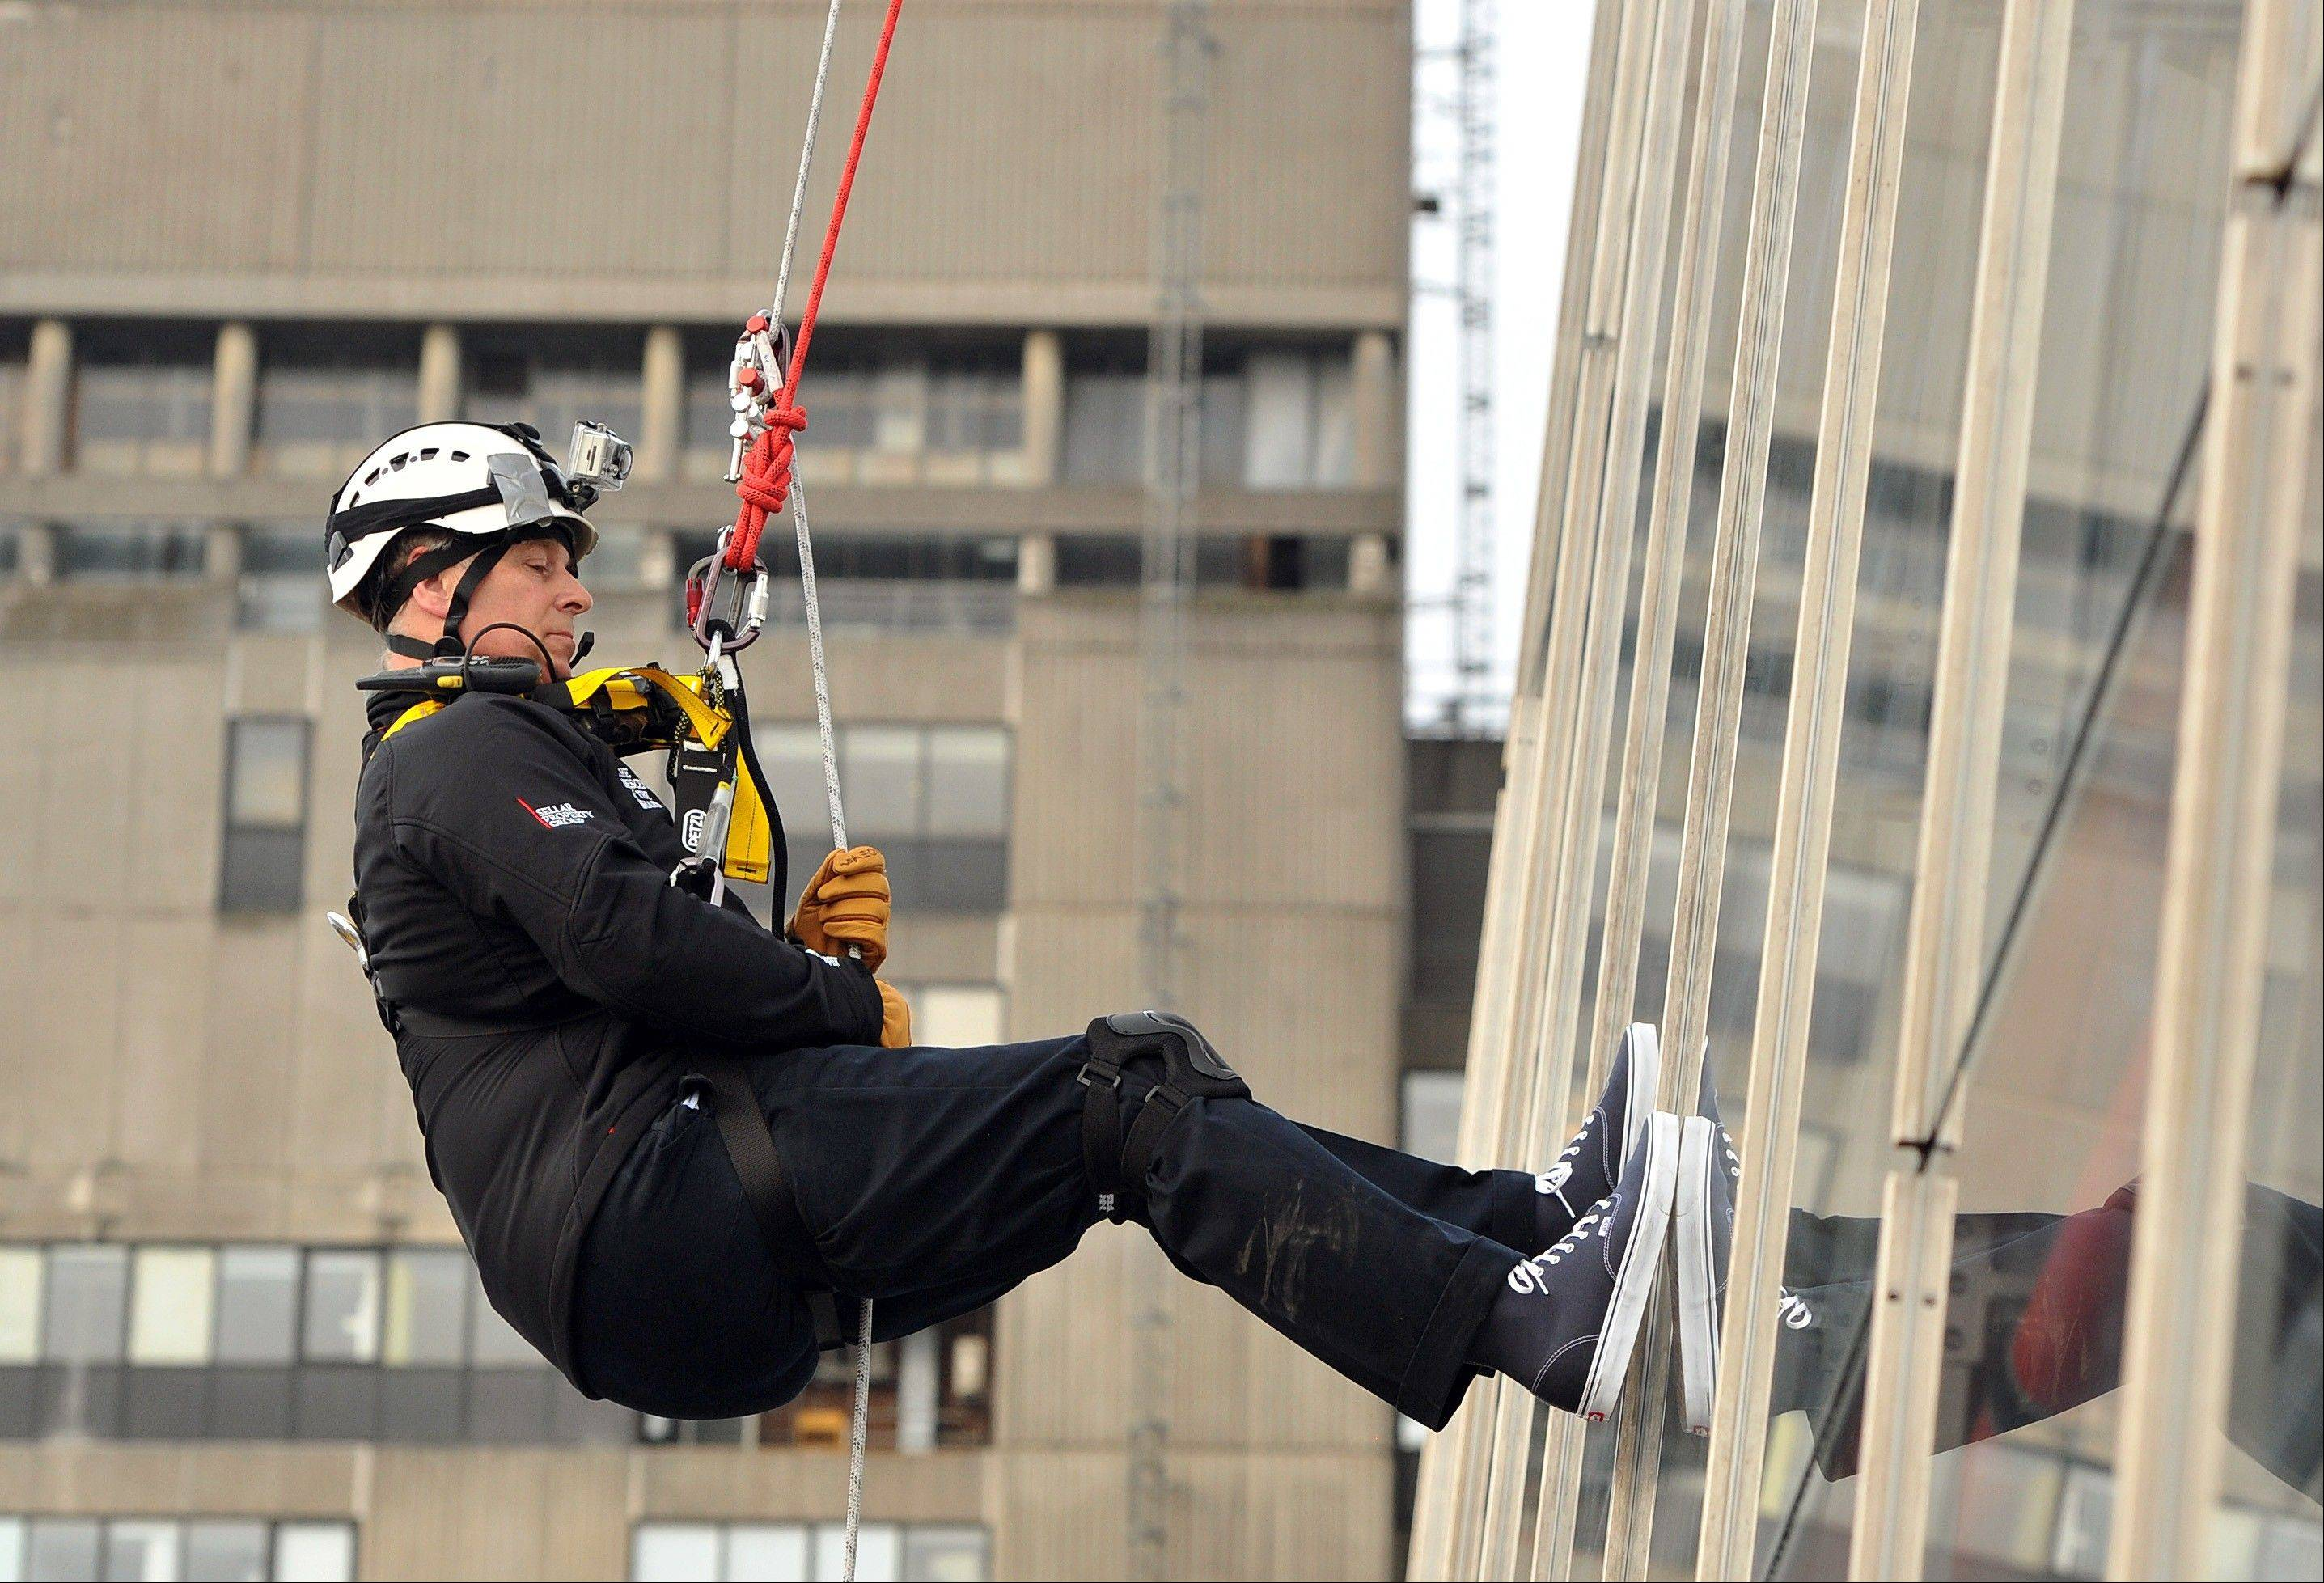 Britain's Prince Andrew abseils down The Shard, the tallest building in Europe, for charity in central London Monday, Sept. 3, 2012. The 52-year-old royal descended the Shard skyscraper in London, beginning his daredevil stunt from the 87th floor - just below the top of the 1,016ft tower - and finishing half an hour later on level 20.